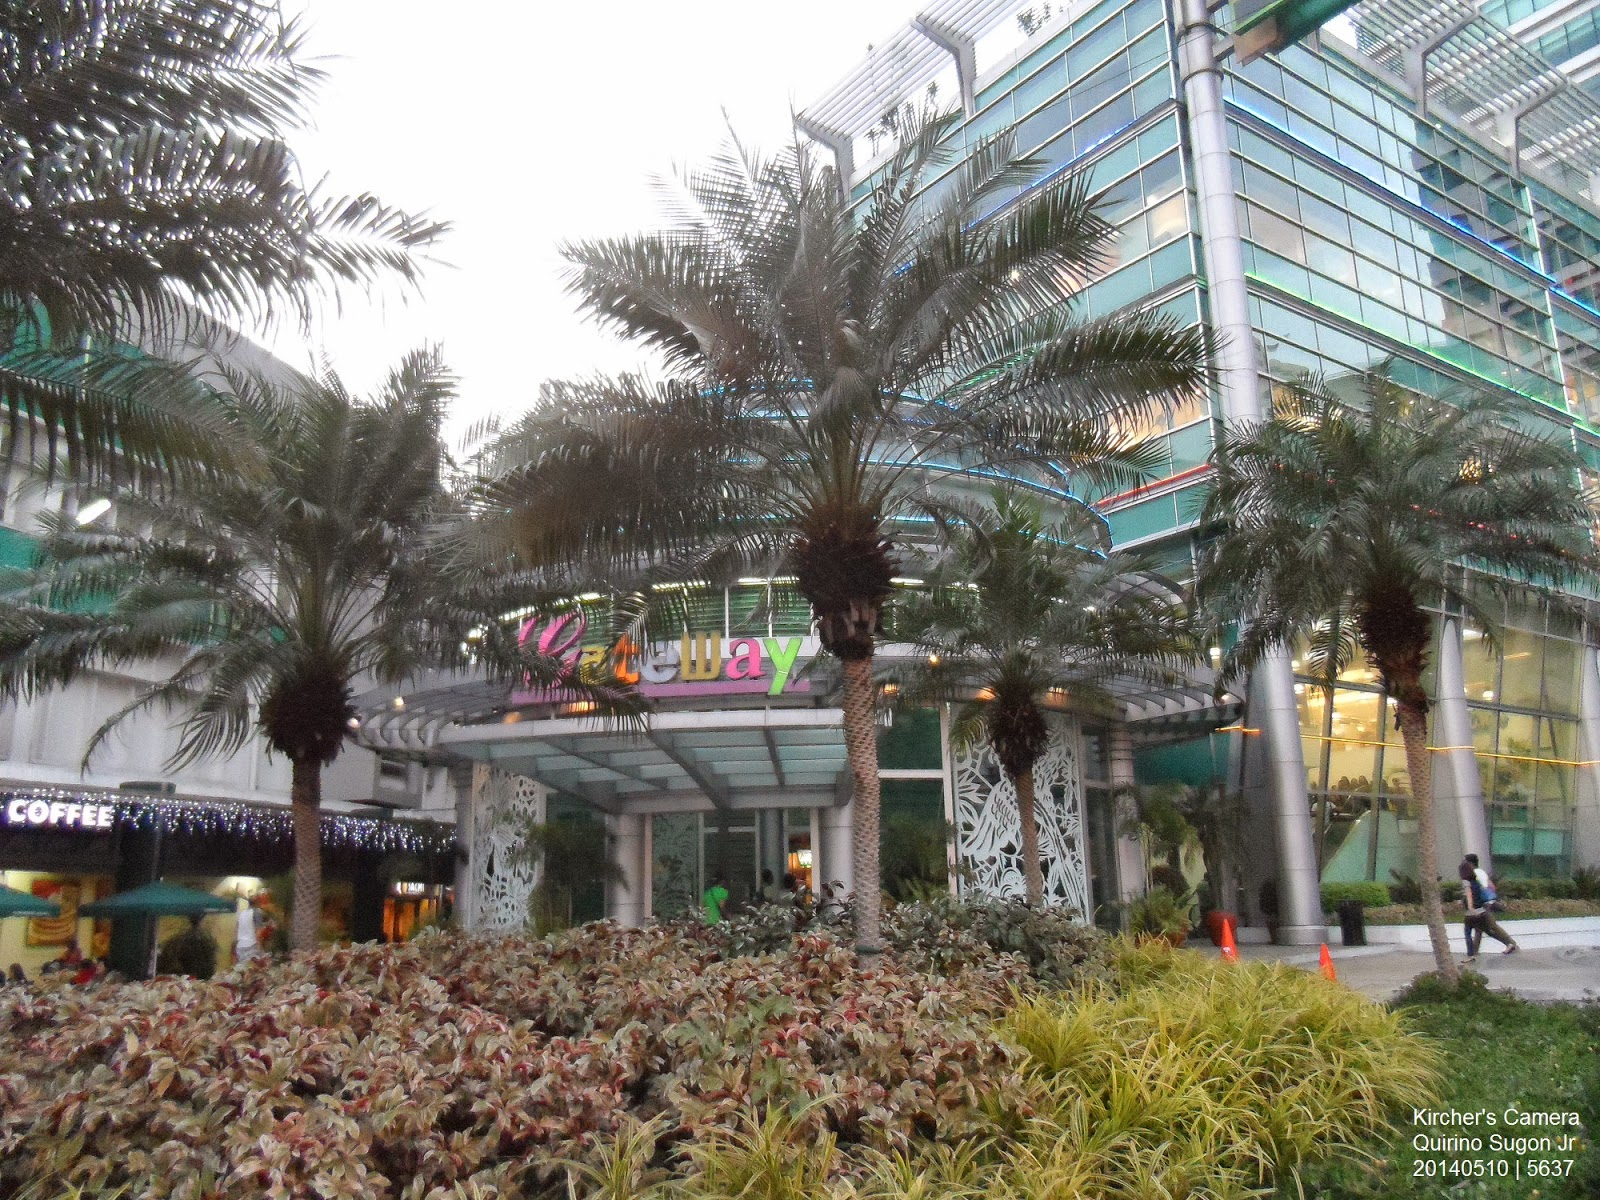 Three palms in front of Gateway Mall's main entrance. Actually there is a  fourth palm, but the three palms provide a strong anchor to the image.